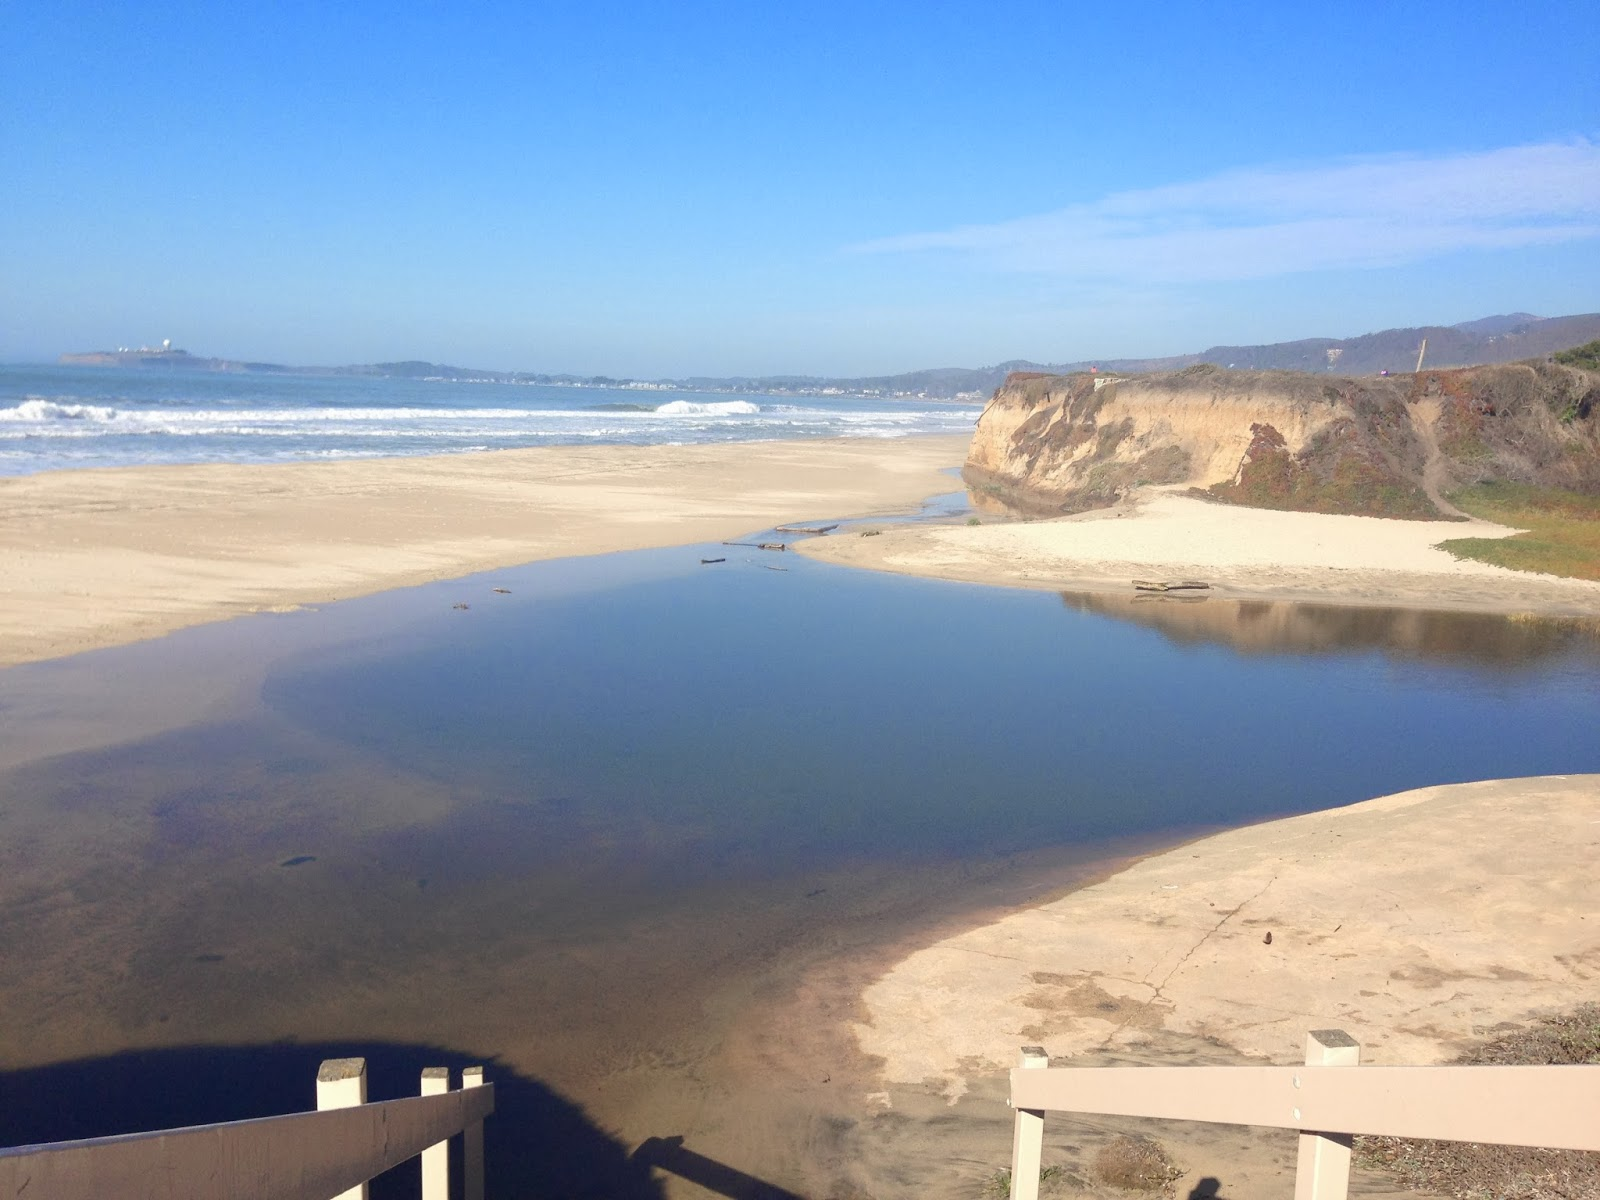 My Friend Told Me She Really Wanted To Go Half Moon Bay So We Decided There When Arrived Parts Of The Beach Were Flooded From Other Day